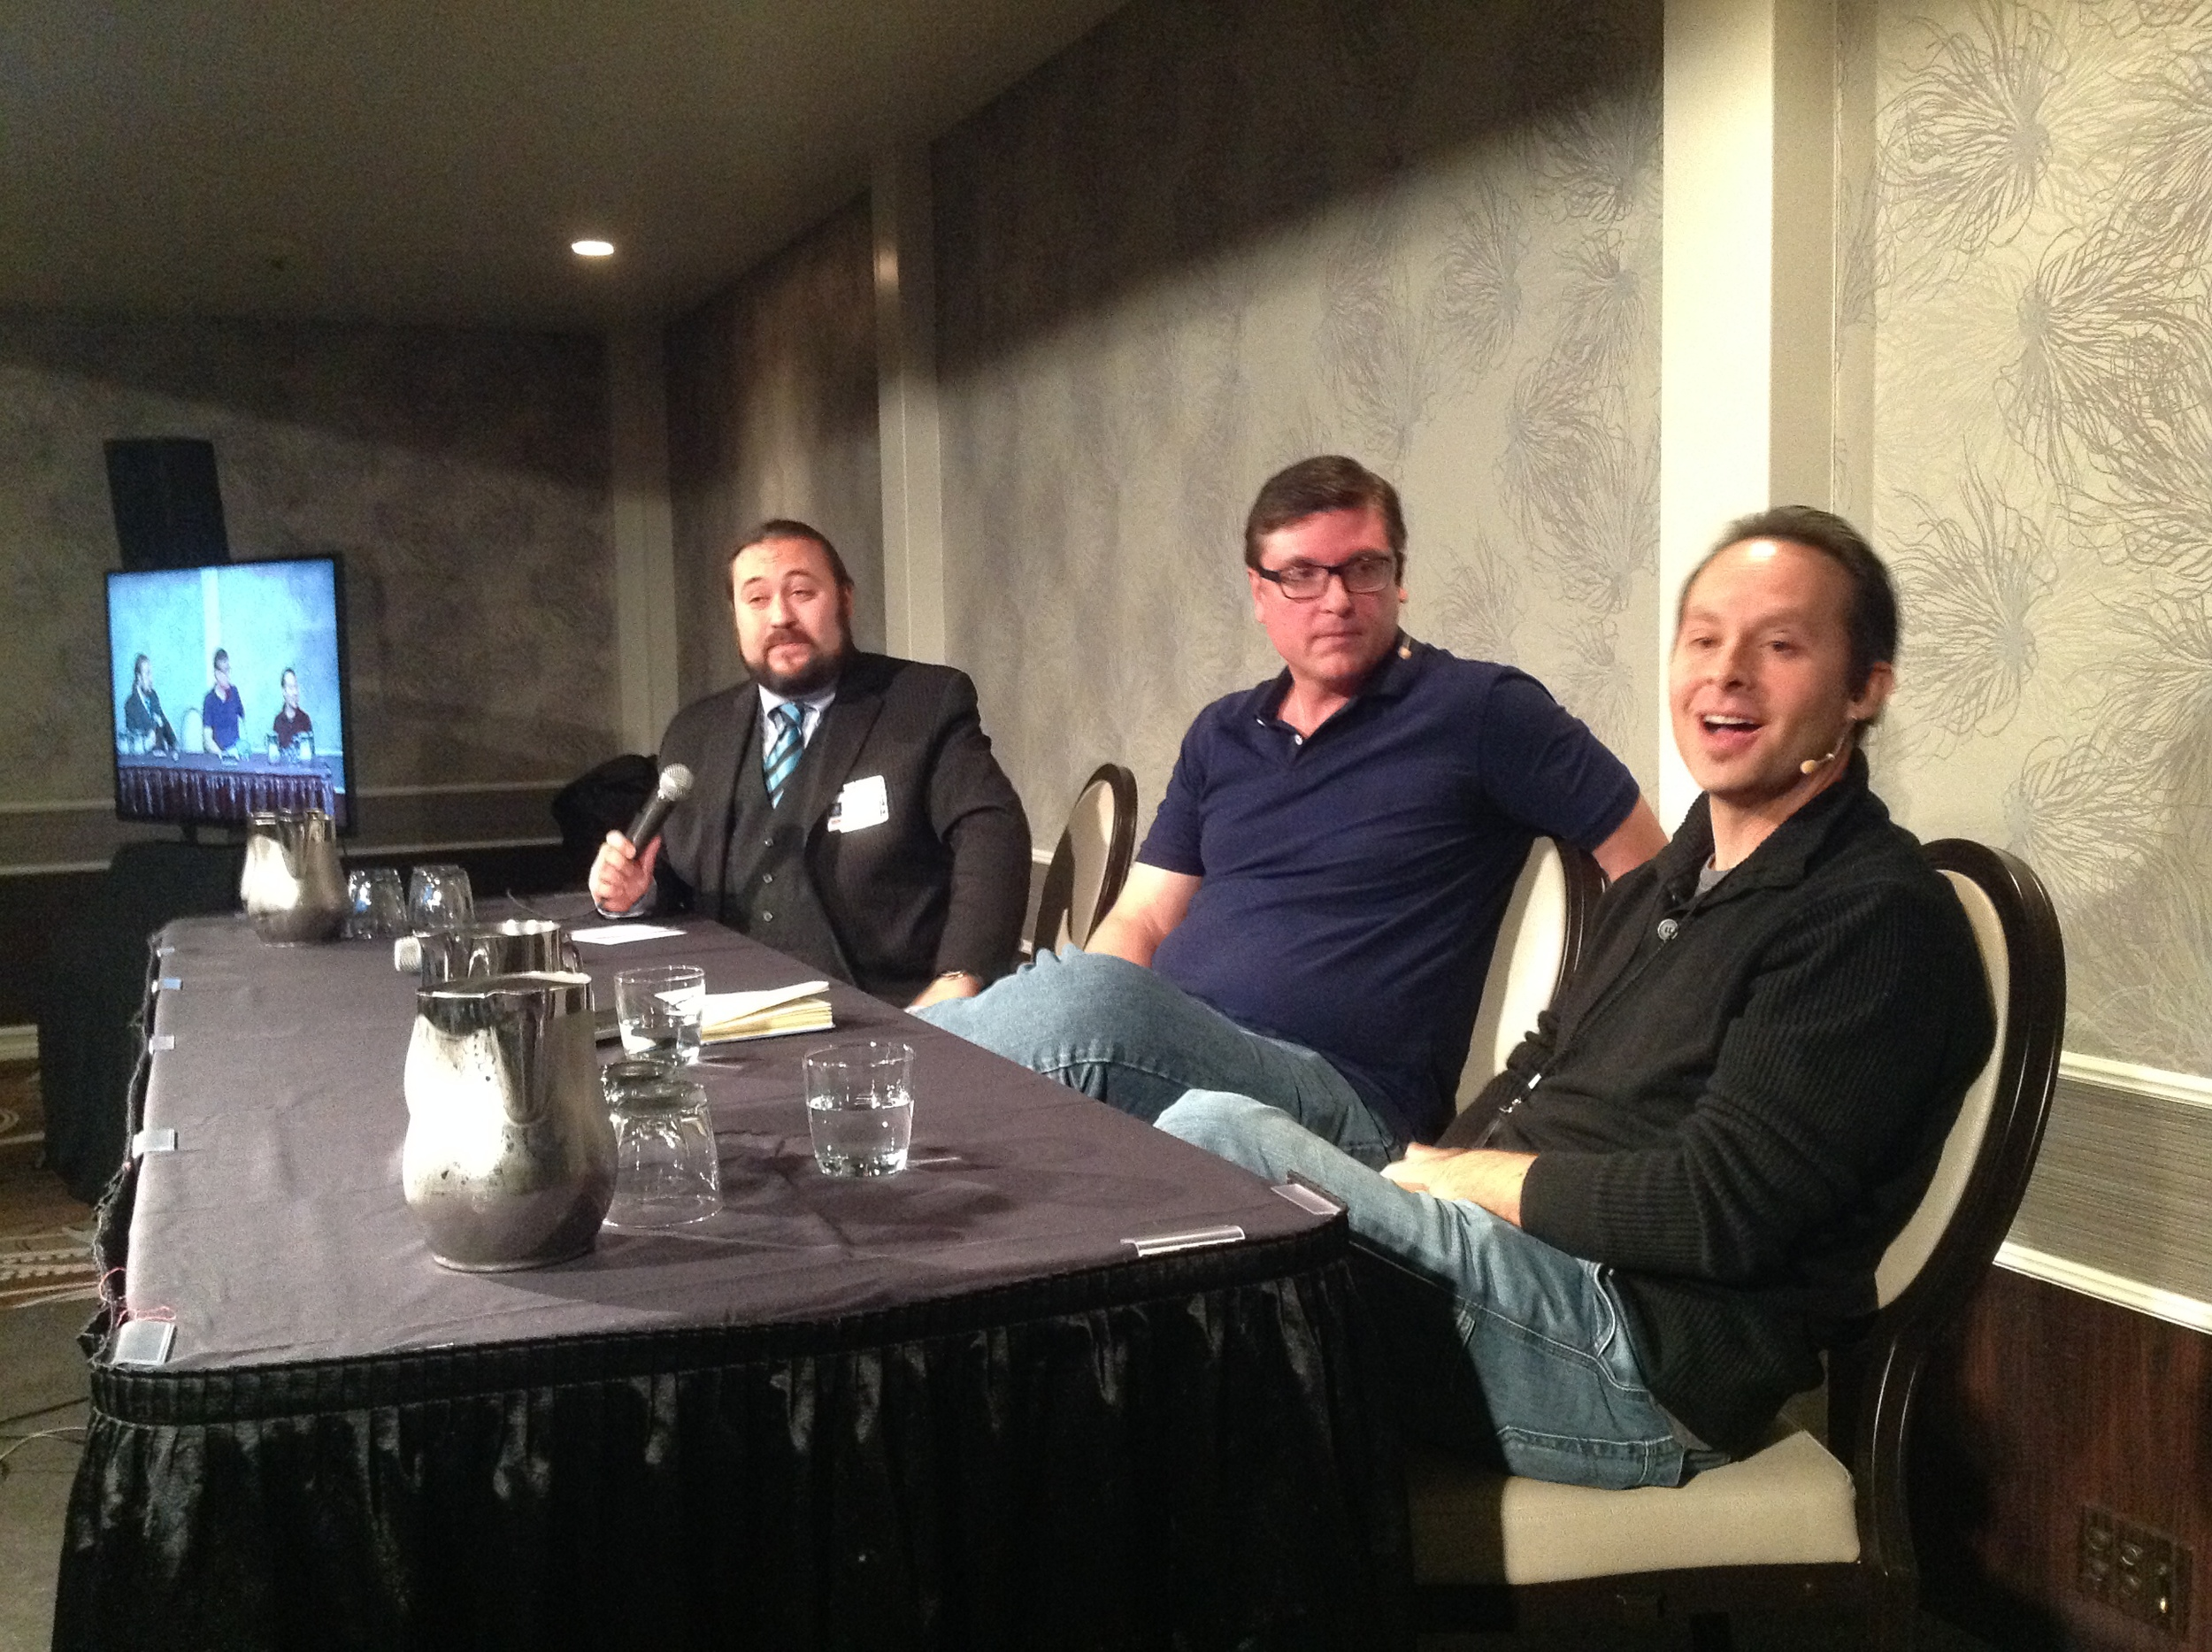 """Paul Draper leads panel discussion with Joe Atmore and Paul Vigil on """"Magic and Mentalism"""""""